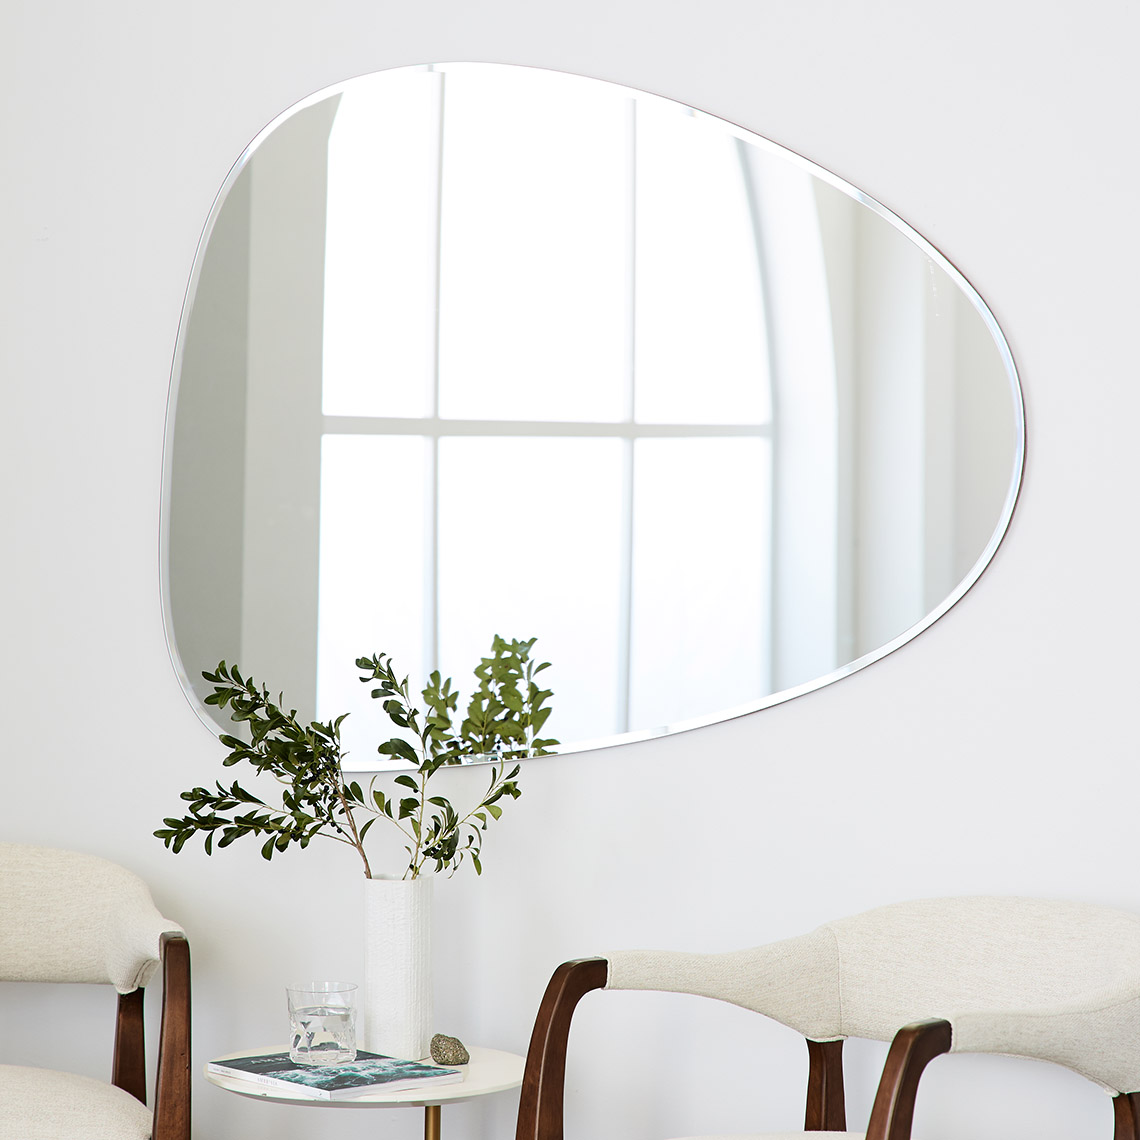 pip-framed-mirrors-asymmetrical-wall-sp17-288